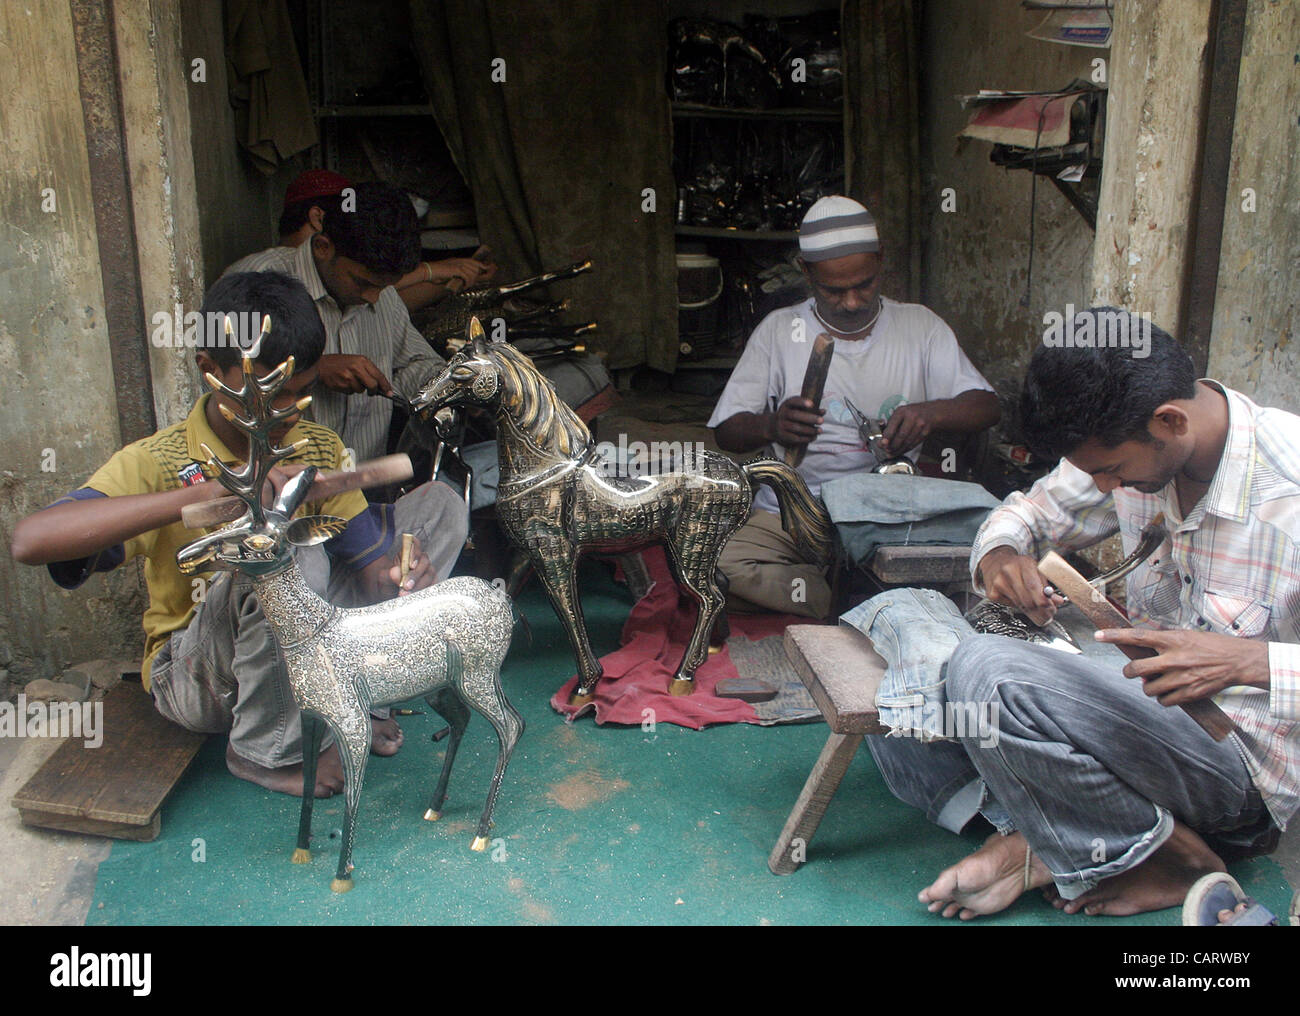 Artisans give final touch to brass made home decoration for Decoration items made at home